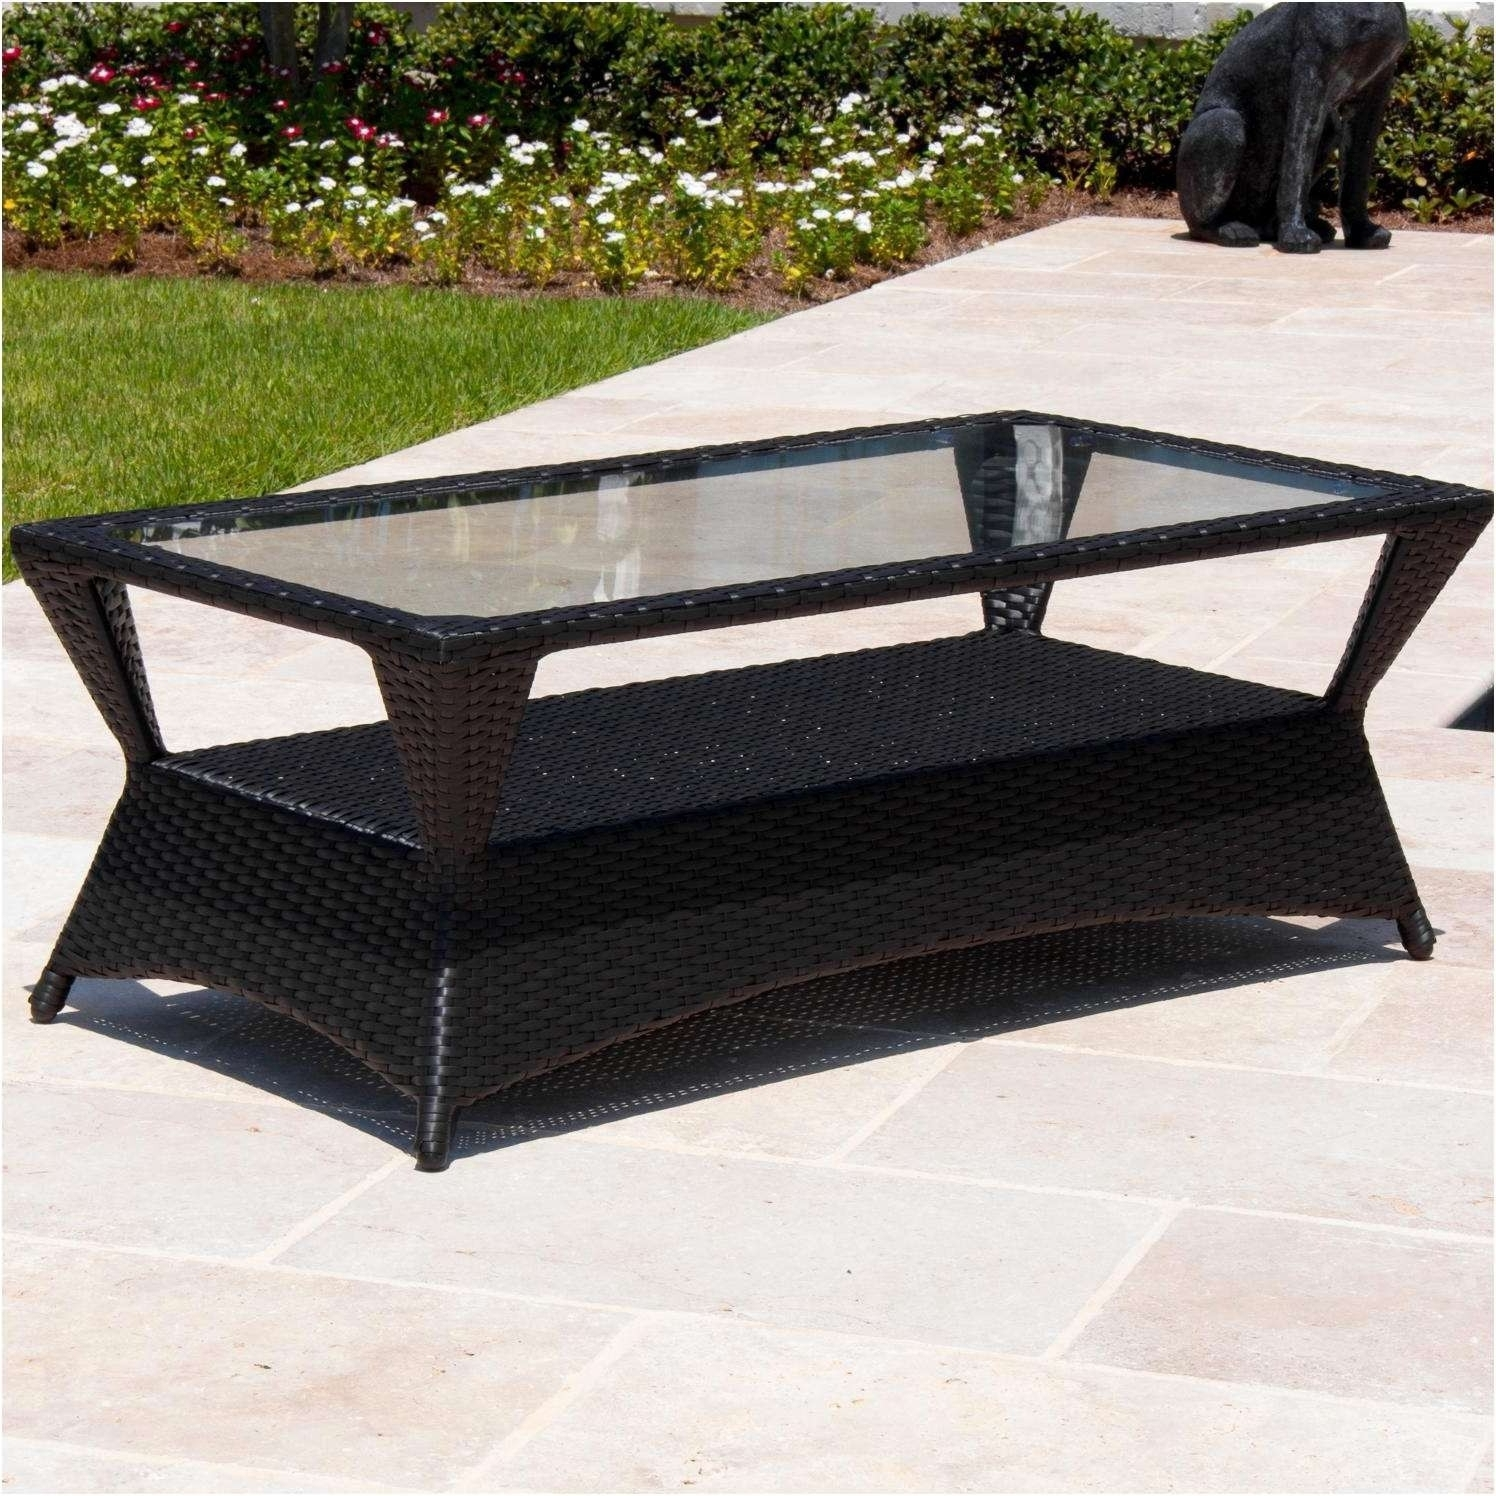 Most Popular Offset Patio Umbrella With Base Beautiful 20 Wonderful Umbrella Side In Patio Umbrella Side Tables (View 5 of 20)